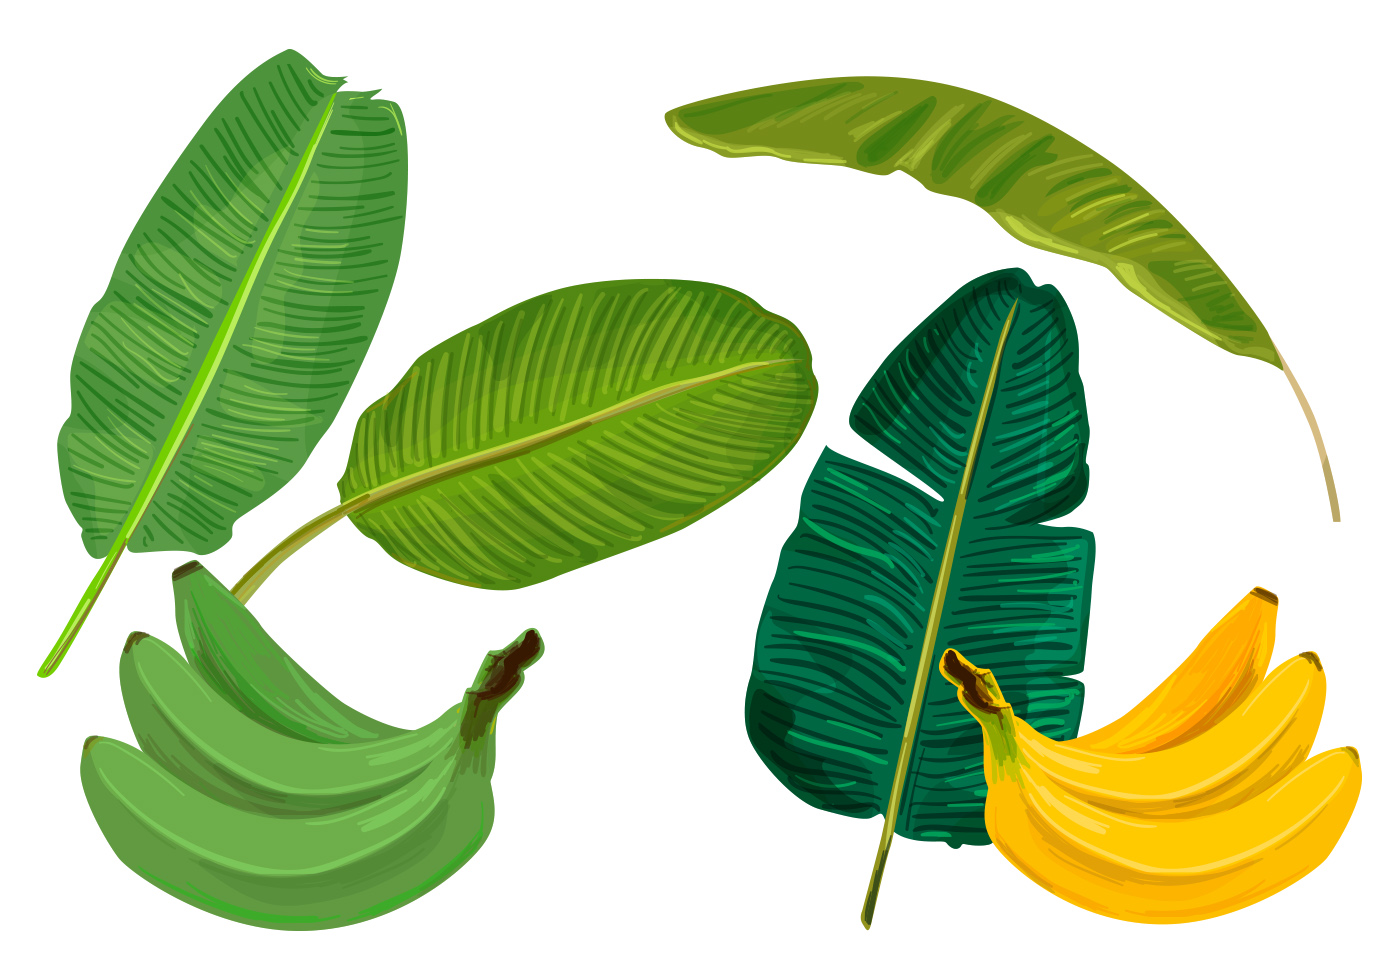 ... Leaves Vectors - Download Free Vector Art, Stock Graphics & Images